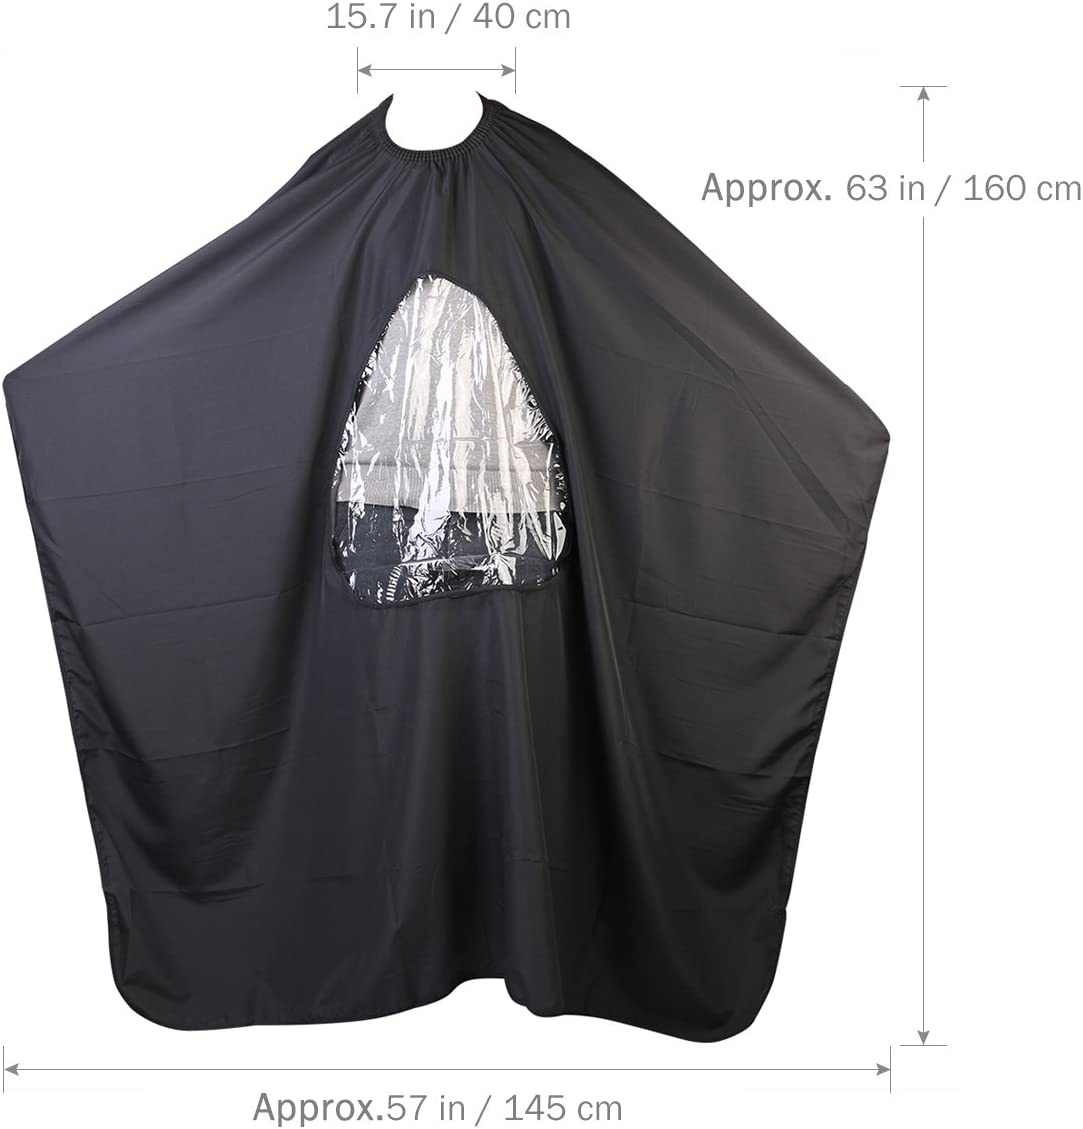 Salon Home Barbers Hairdressing Cape Gown with Viewing Window for Hair Cutting (Black)